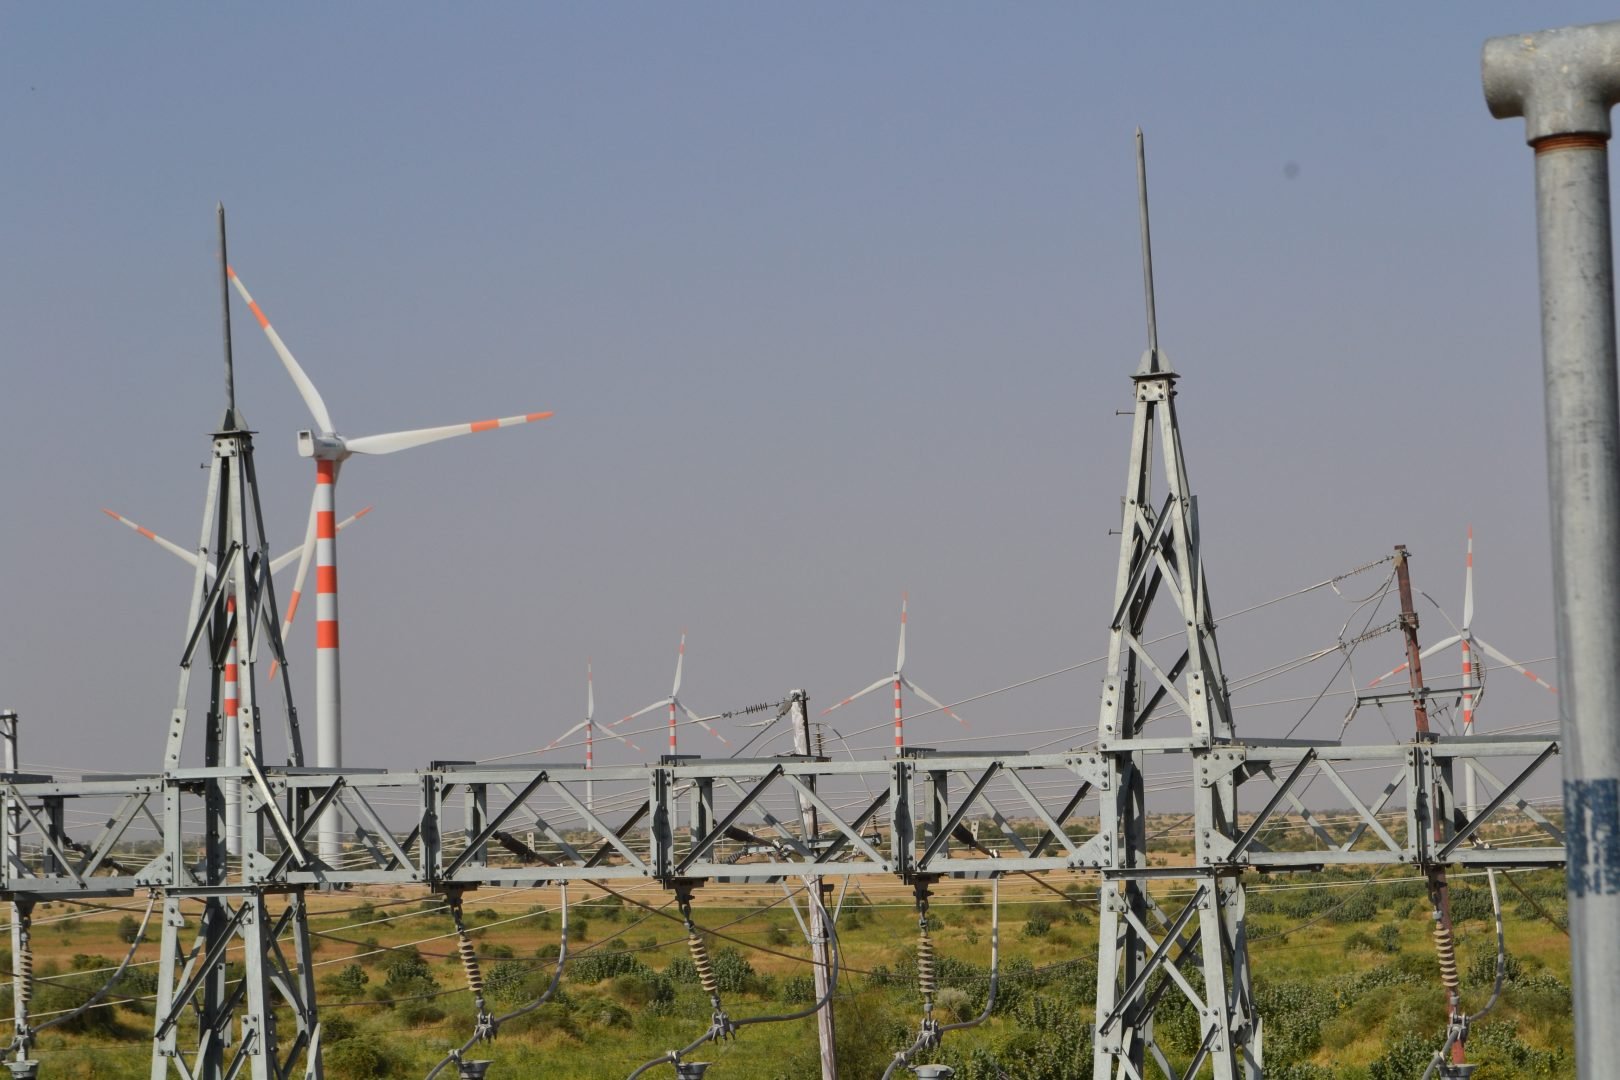 Wind turbine surrounded by power pylons